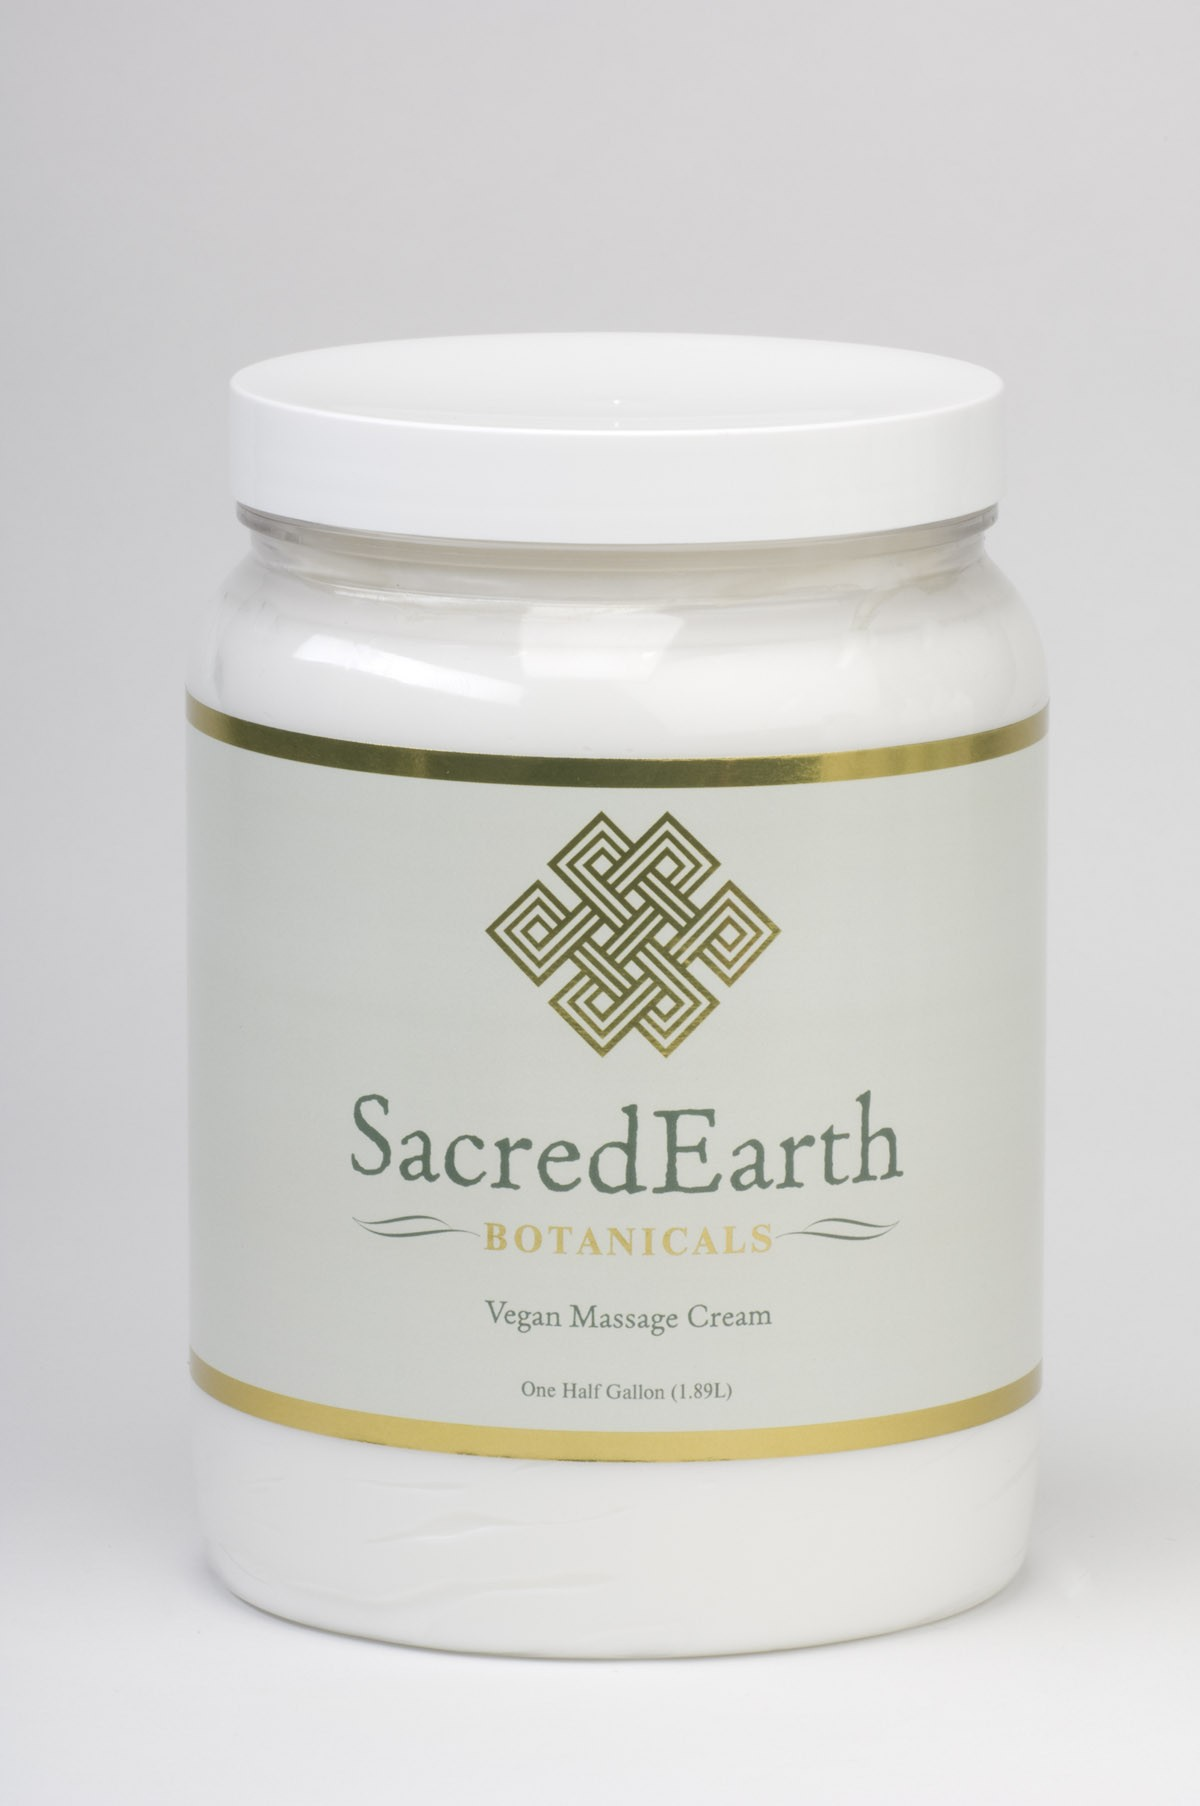 Sacred Earth Vegan Massage Cream 1/2 Gallon